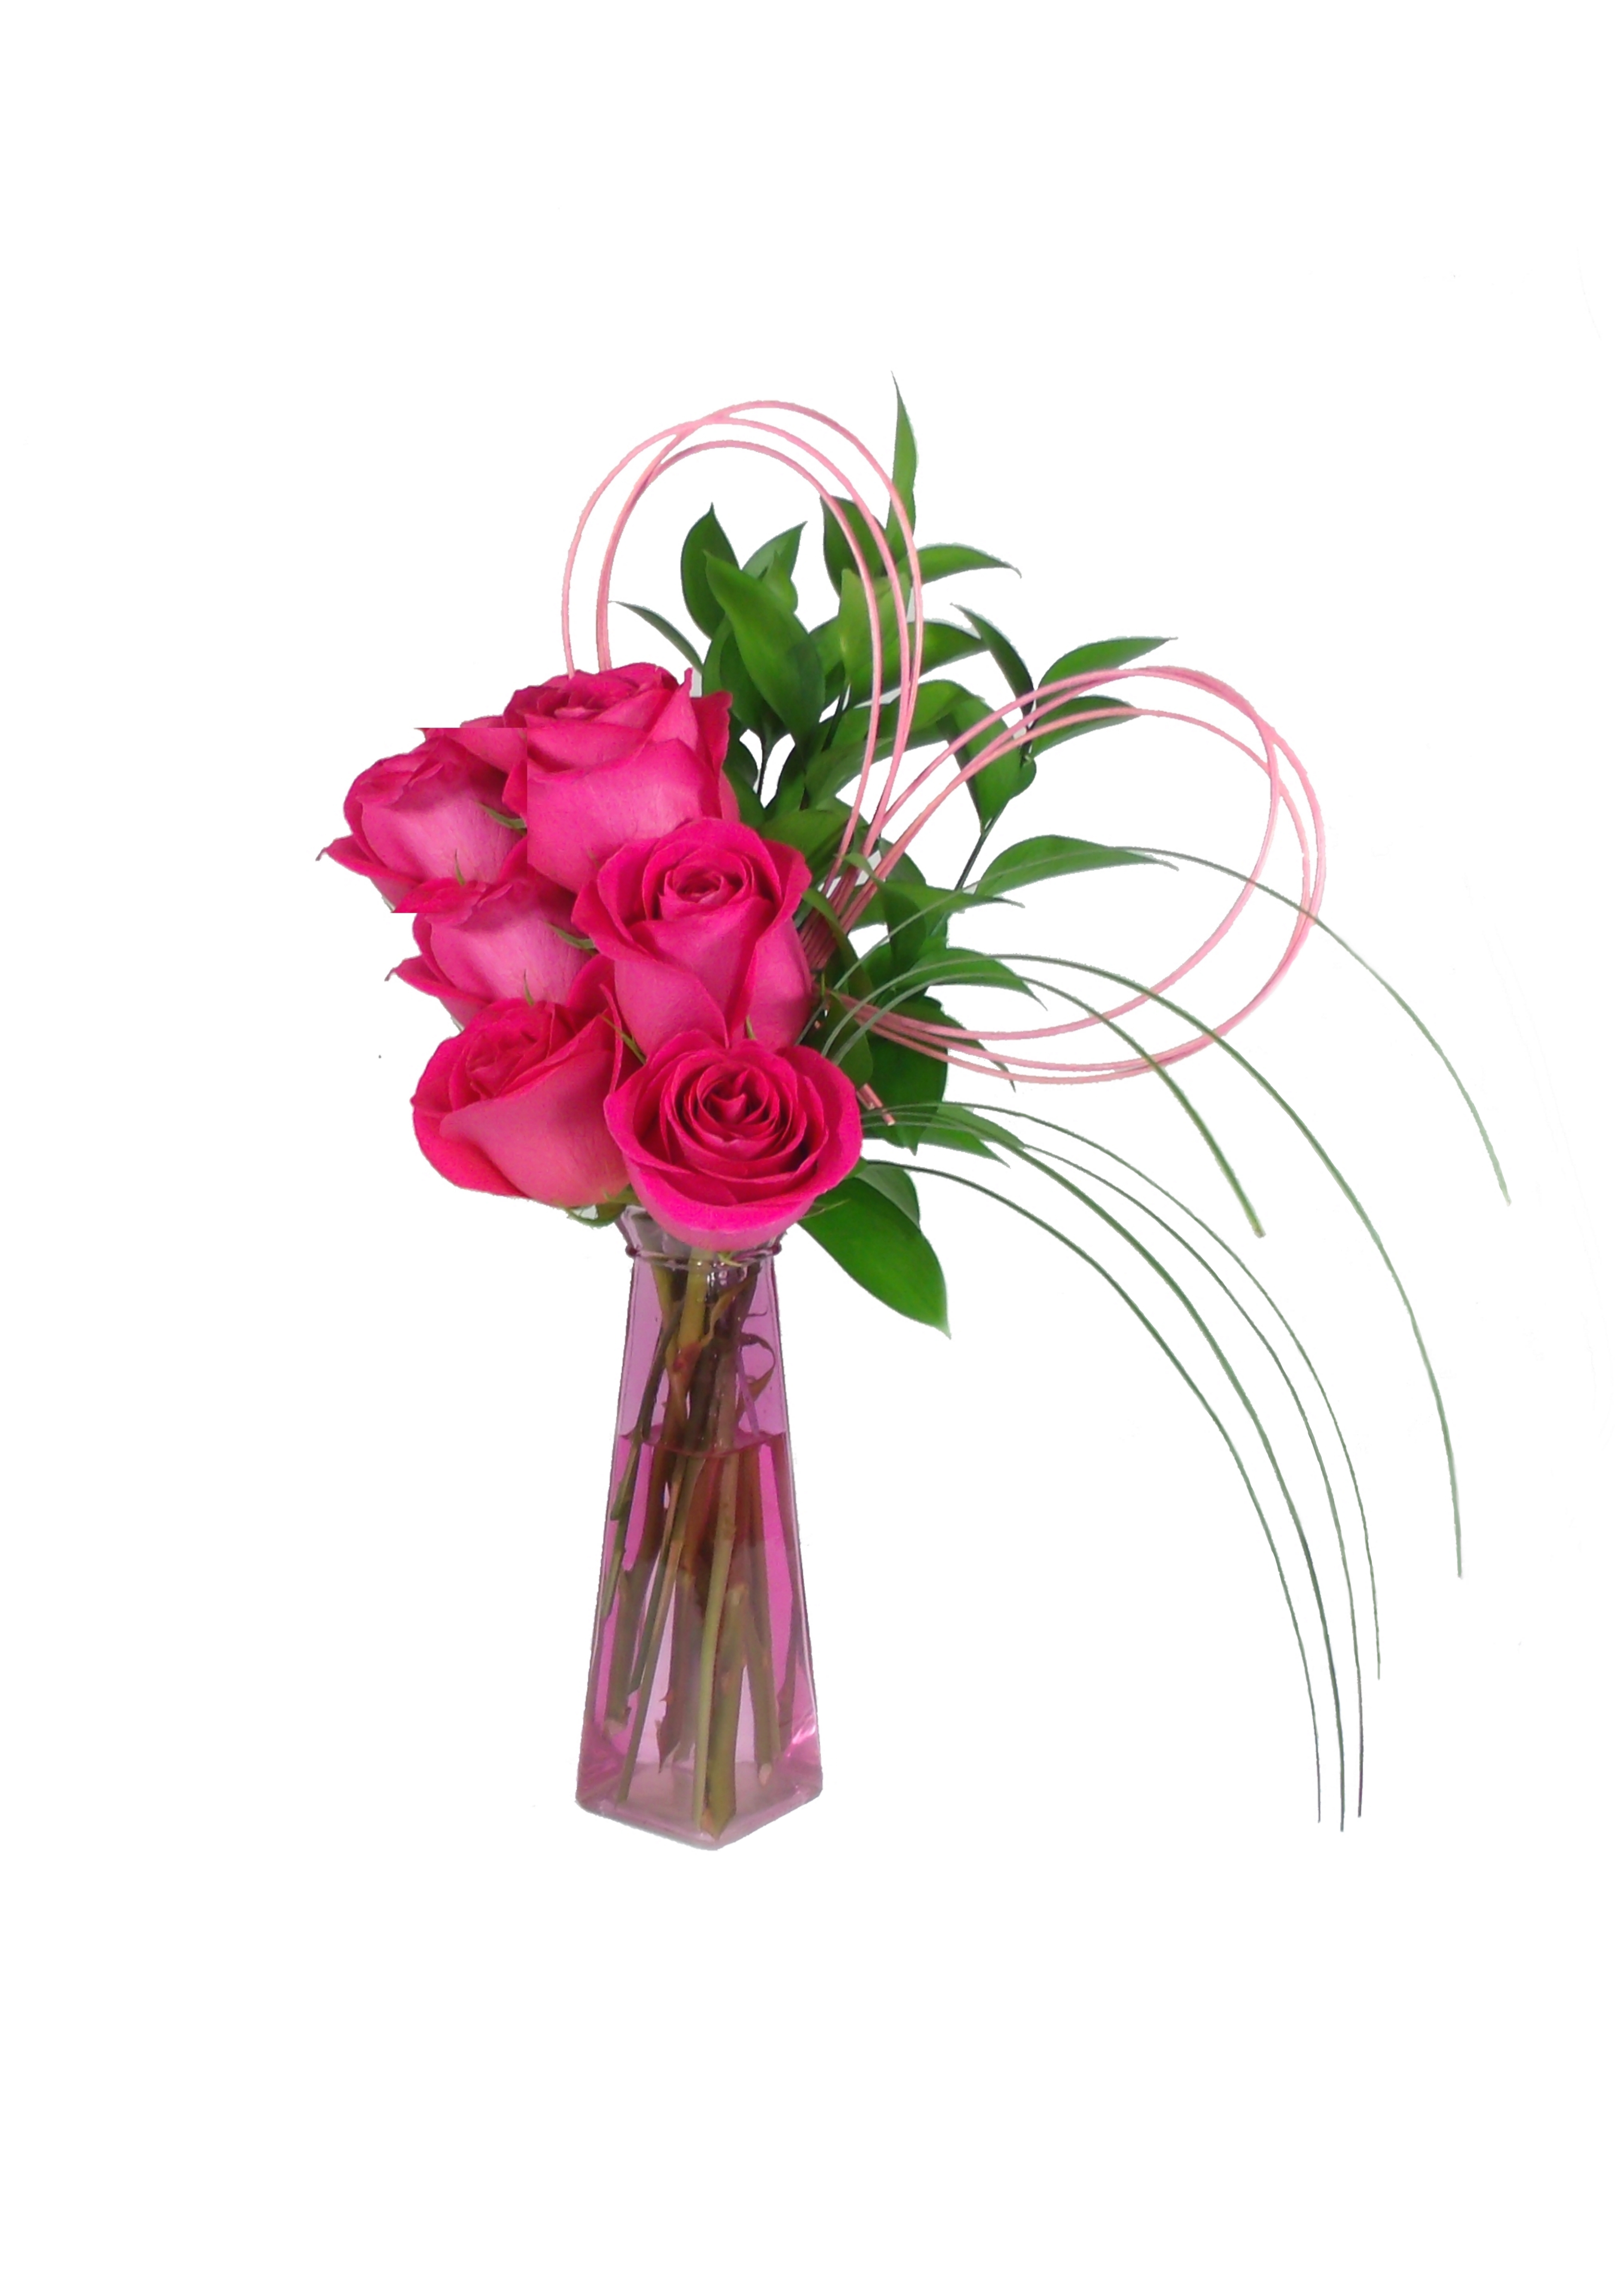 Celebrate their long and successful career by sending a stunning bouquet of flowers, expertly handcrafted and delivered to their home or workplace.